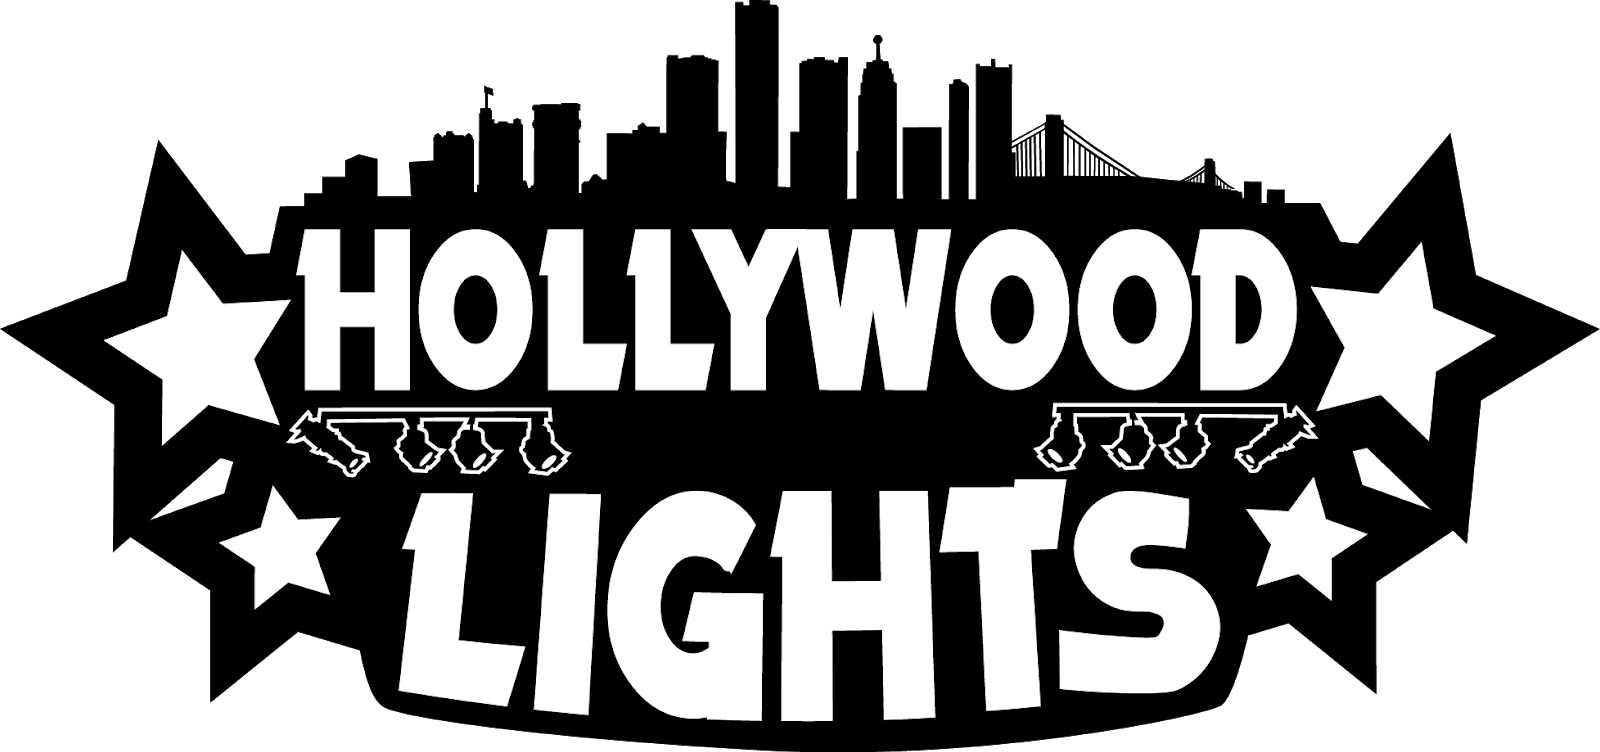 HoLLyWood LiGhTs: ThE BlOg EdITioN